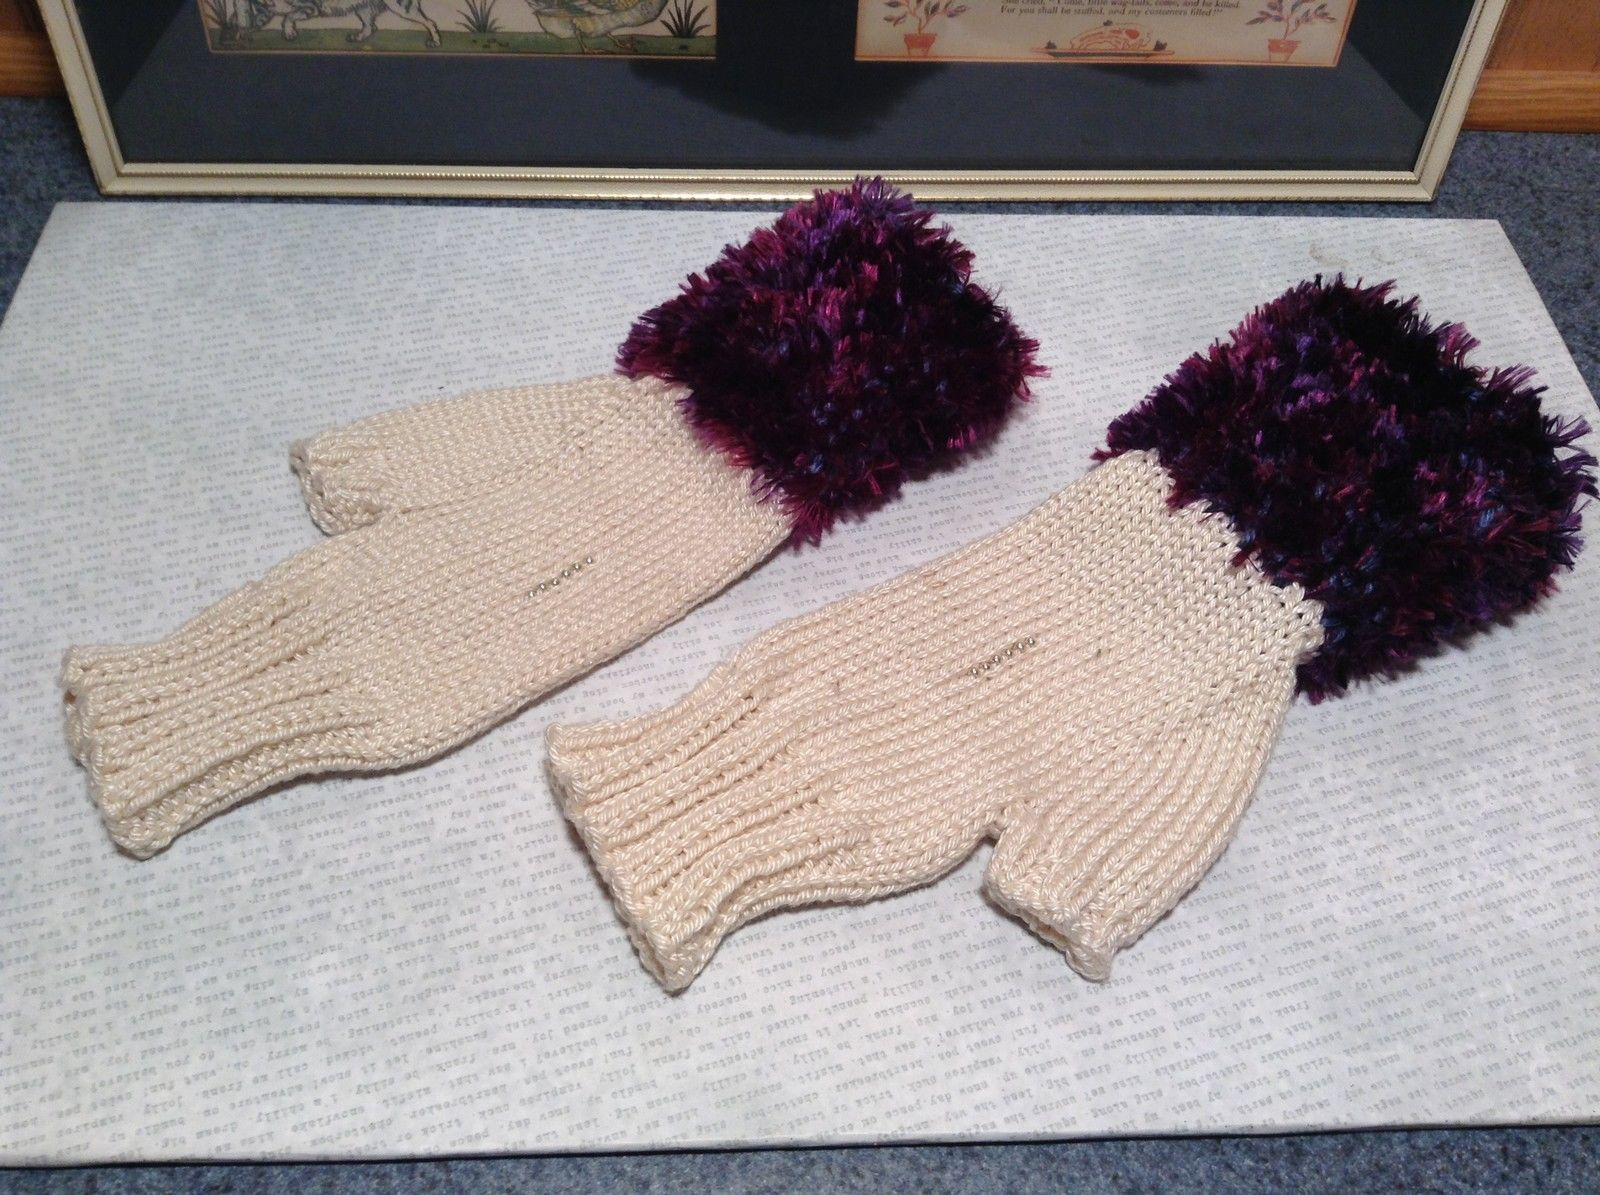 Purple and White Hand Knitted Woven Fingerless Gloves Very Soft